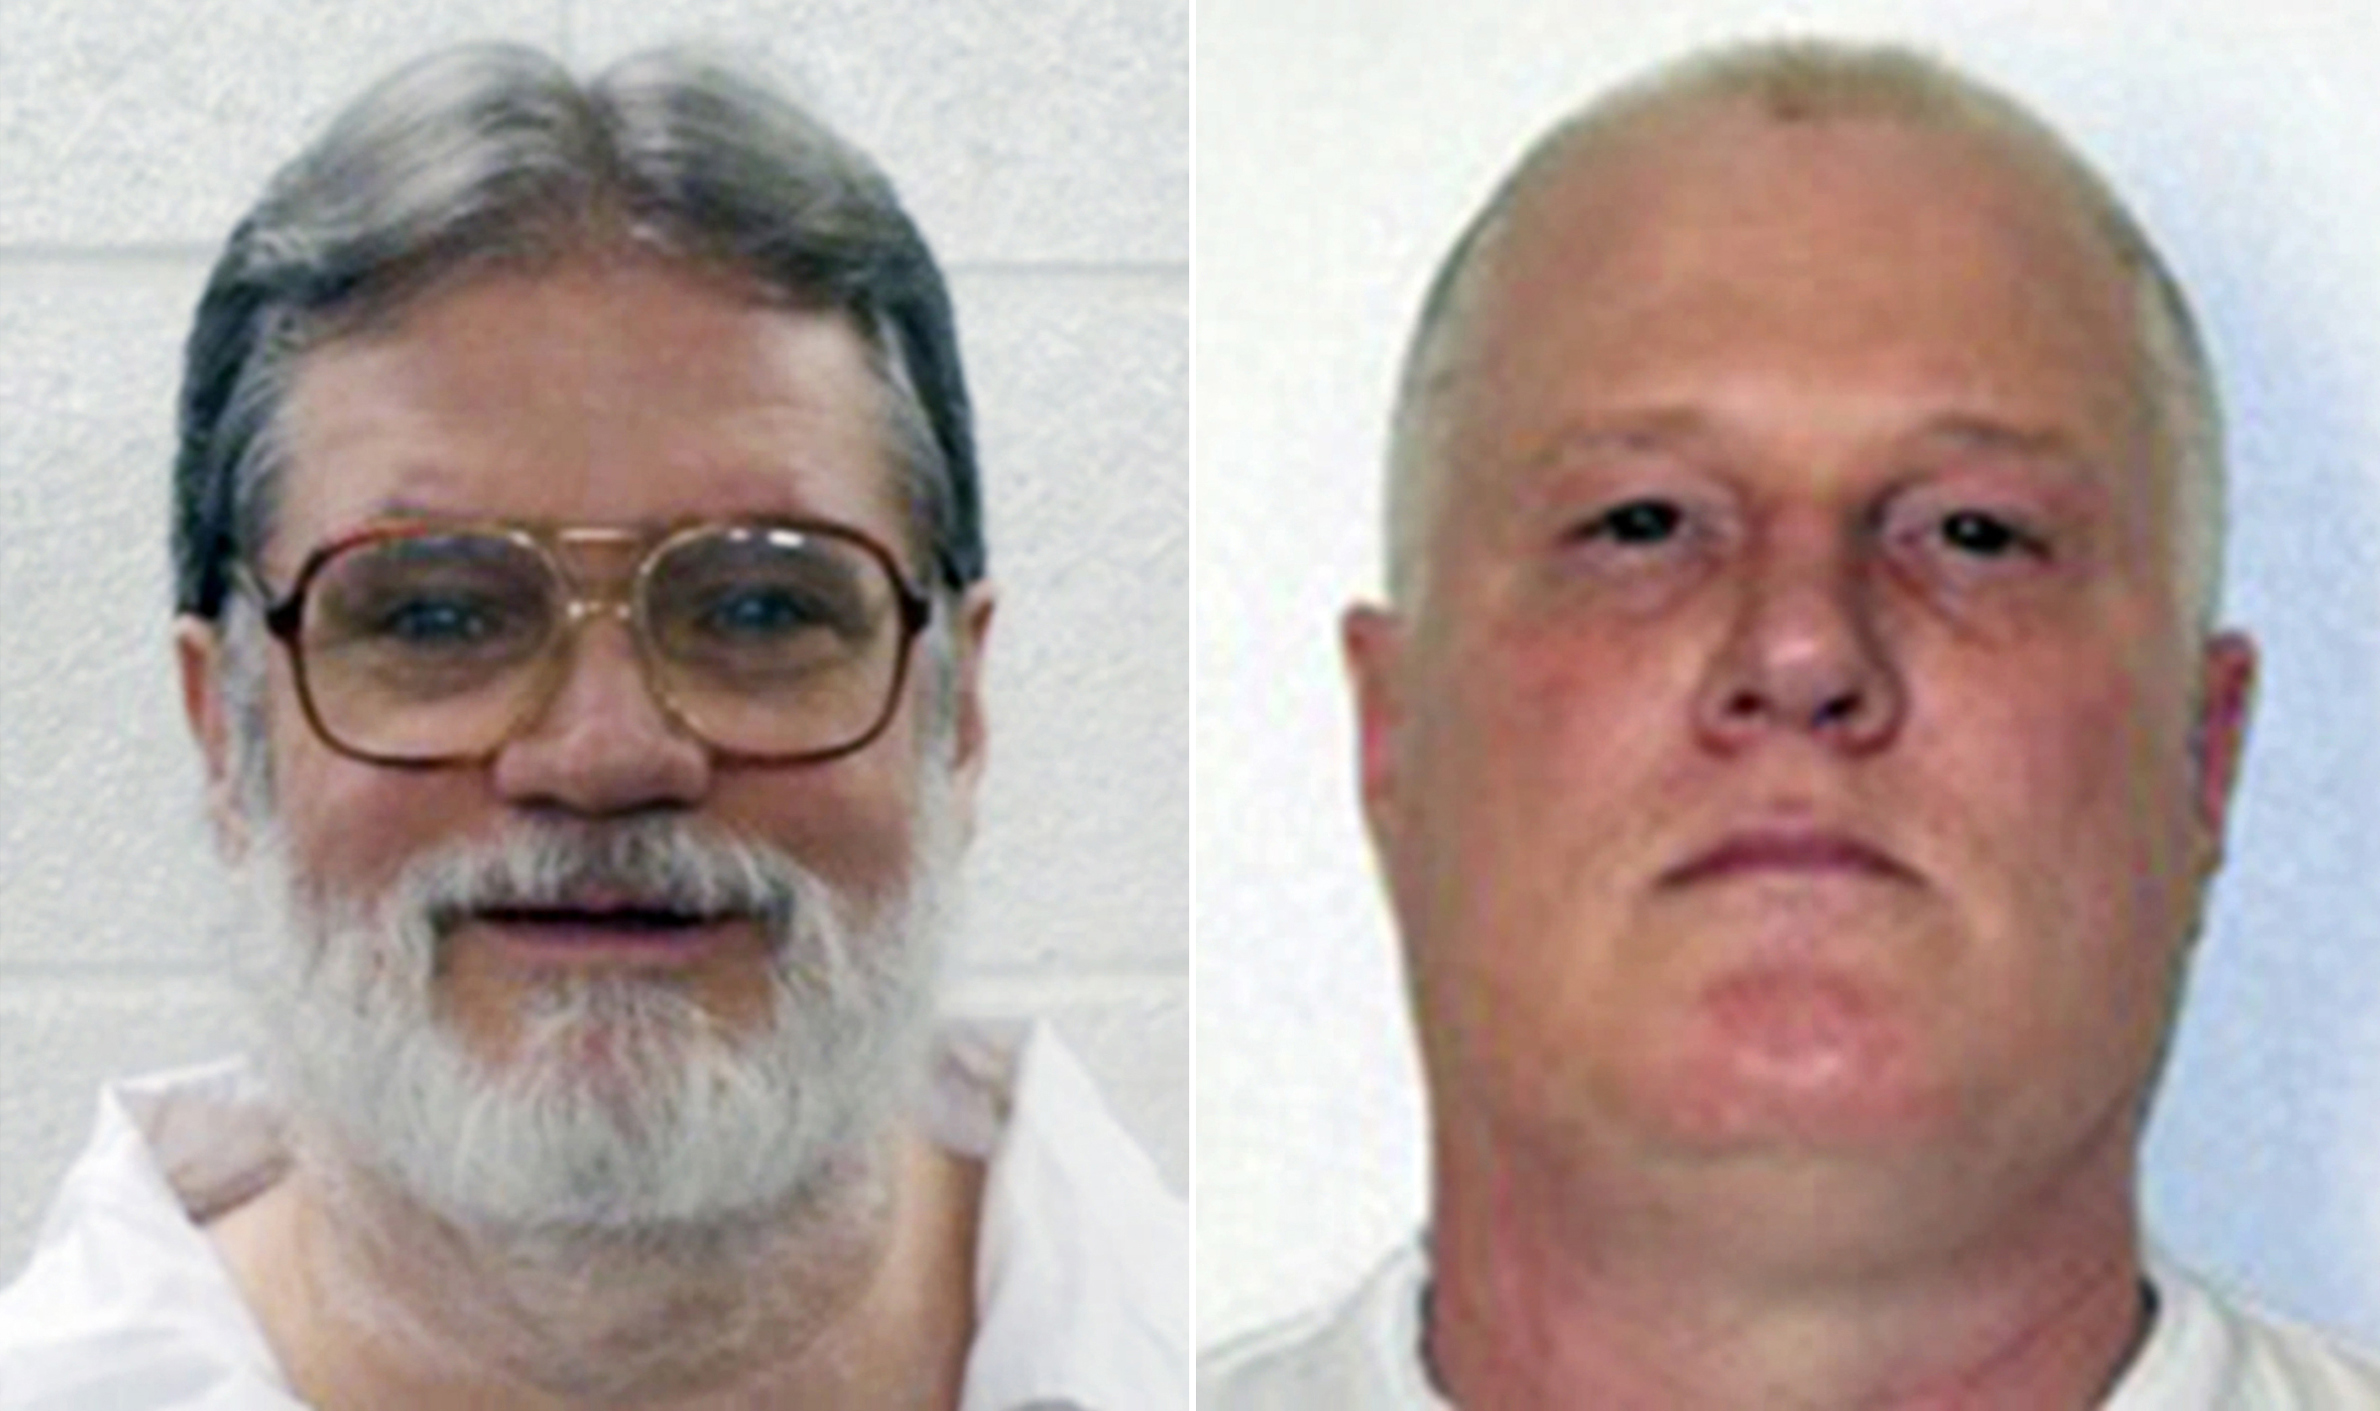 Death-row inmates Bruce Earl Ward, left, and Don William Davis.